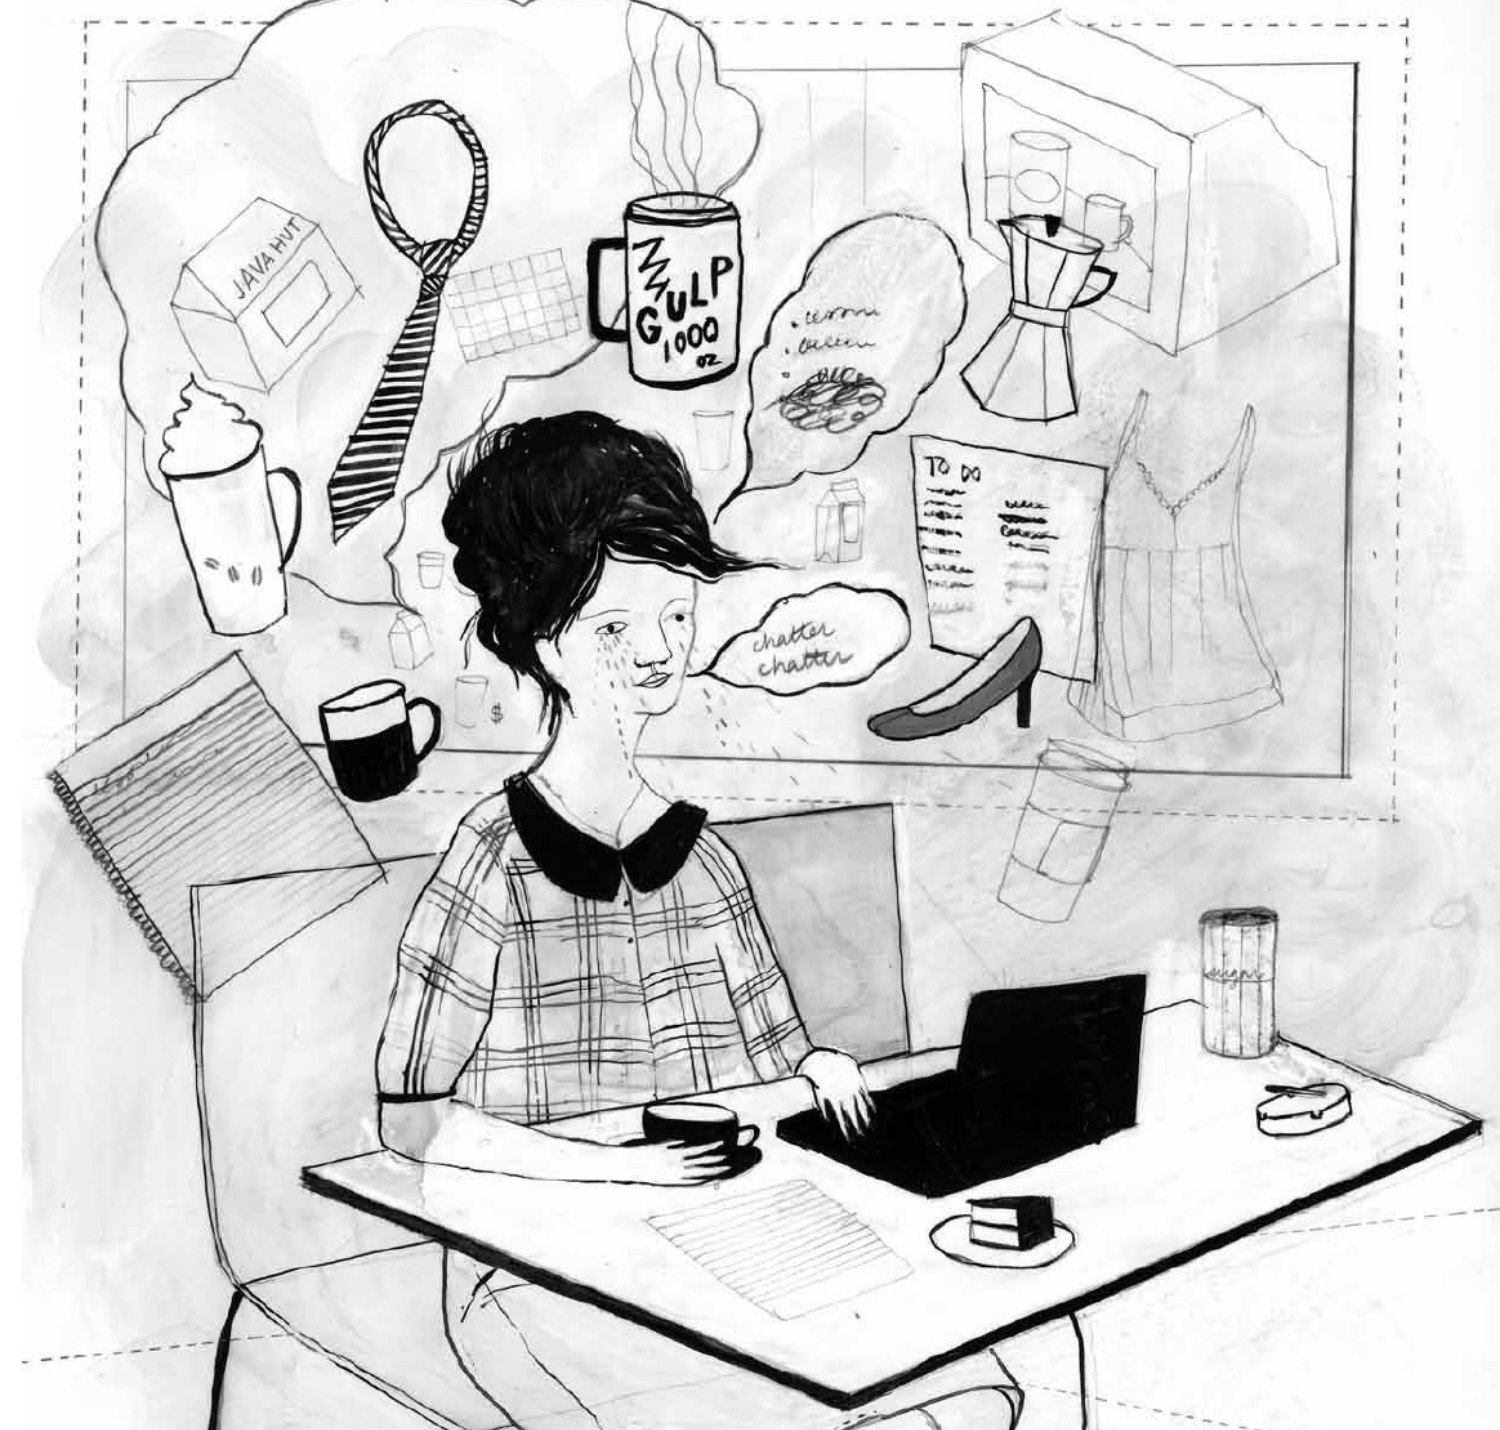 black and white illustration of a woman with tears on her face sitting at a desk and drinking coffee